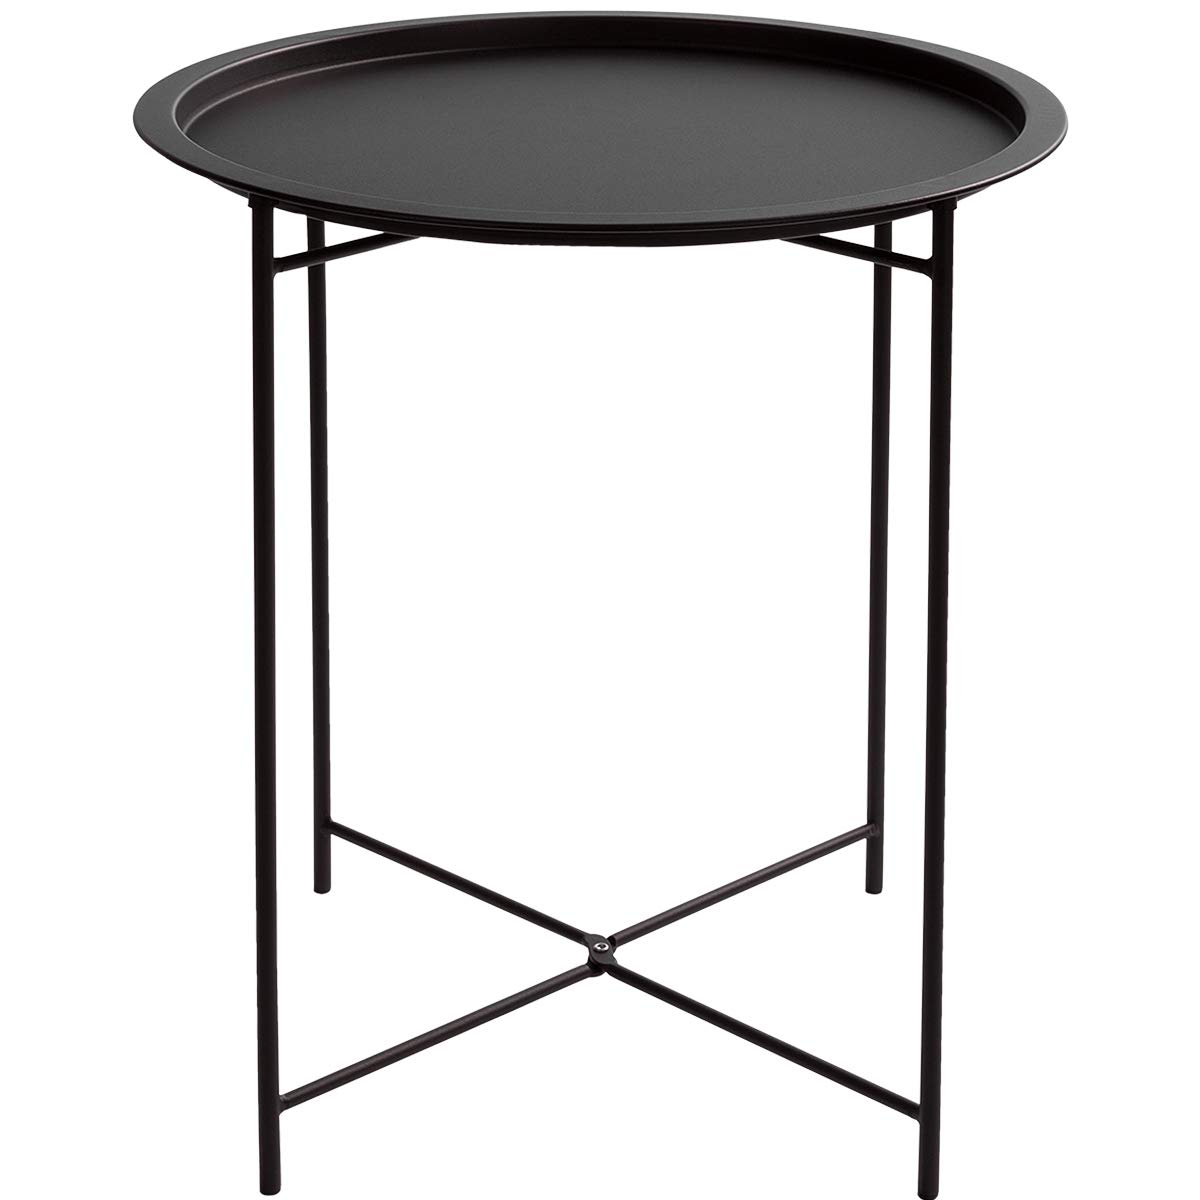 HollyHOME Folding Tray Metal Side Table, Sofa Table Small Round End Tables, Anti-Rust and Waterproof Outdoor or Indoor Snack Table, Accent Coffee Table,(H) 20.28'' x(D) 18.11'', Frosted Black by HollyHOME